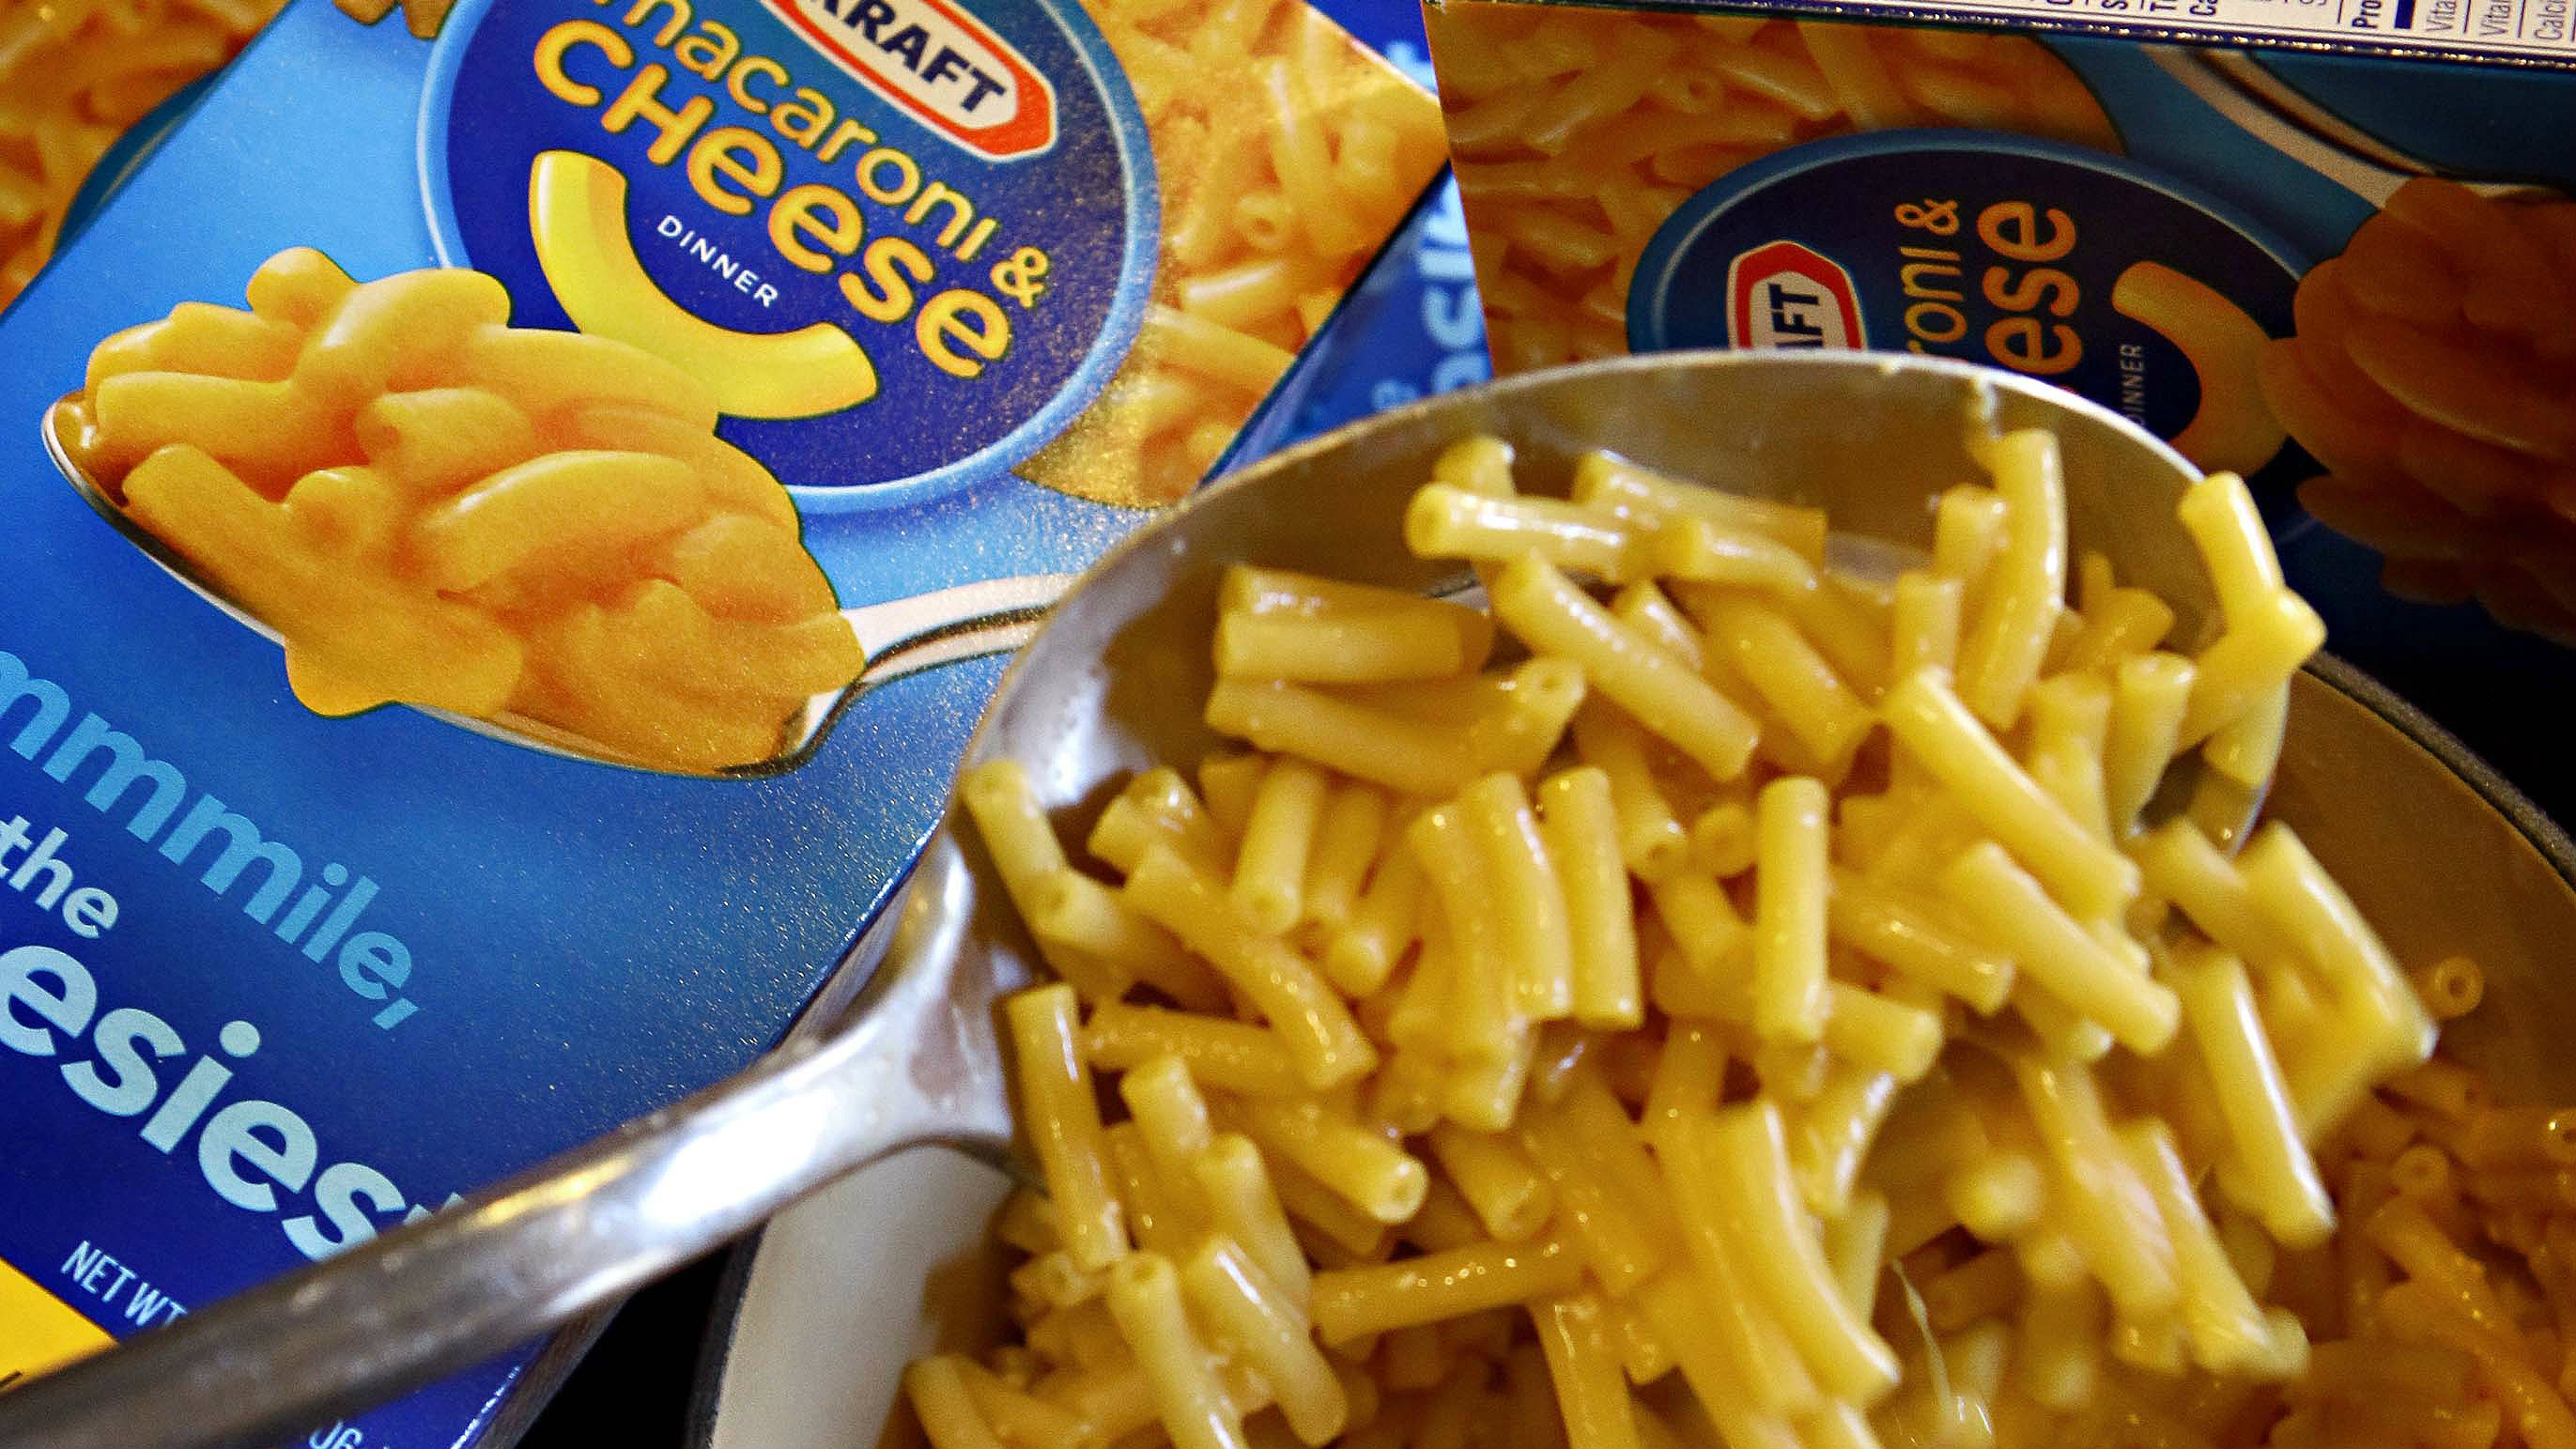 Kraft Removing Artificial Dyes, Preservatives from Macaroni and Cheese foto